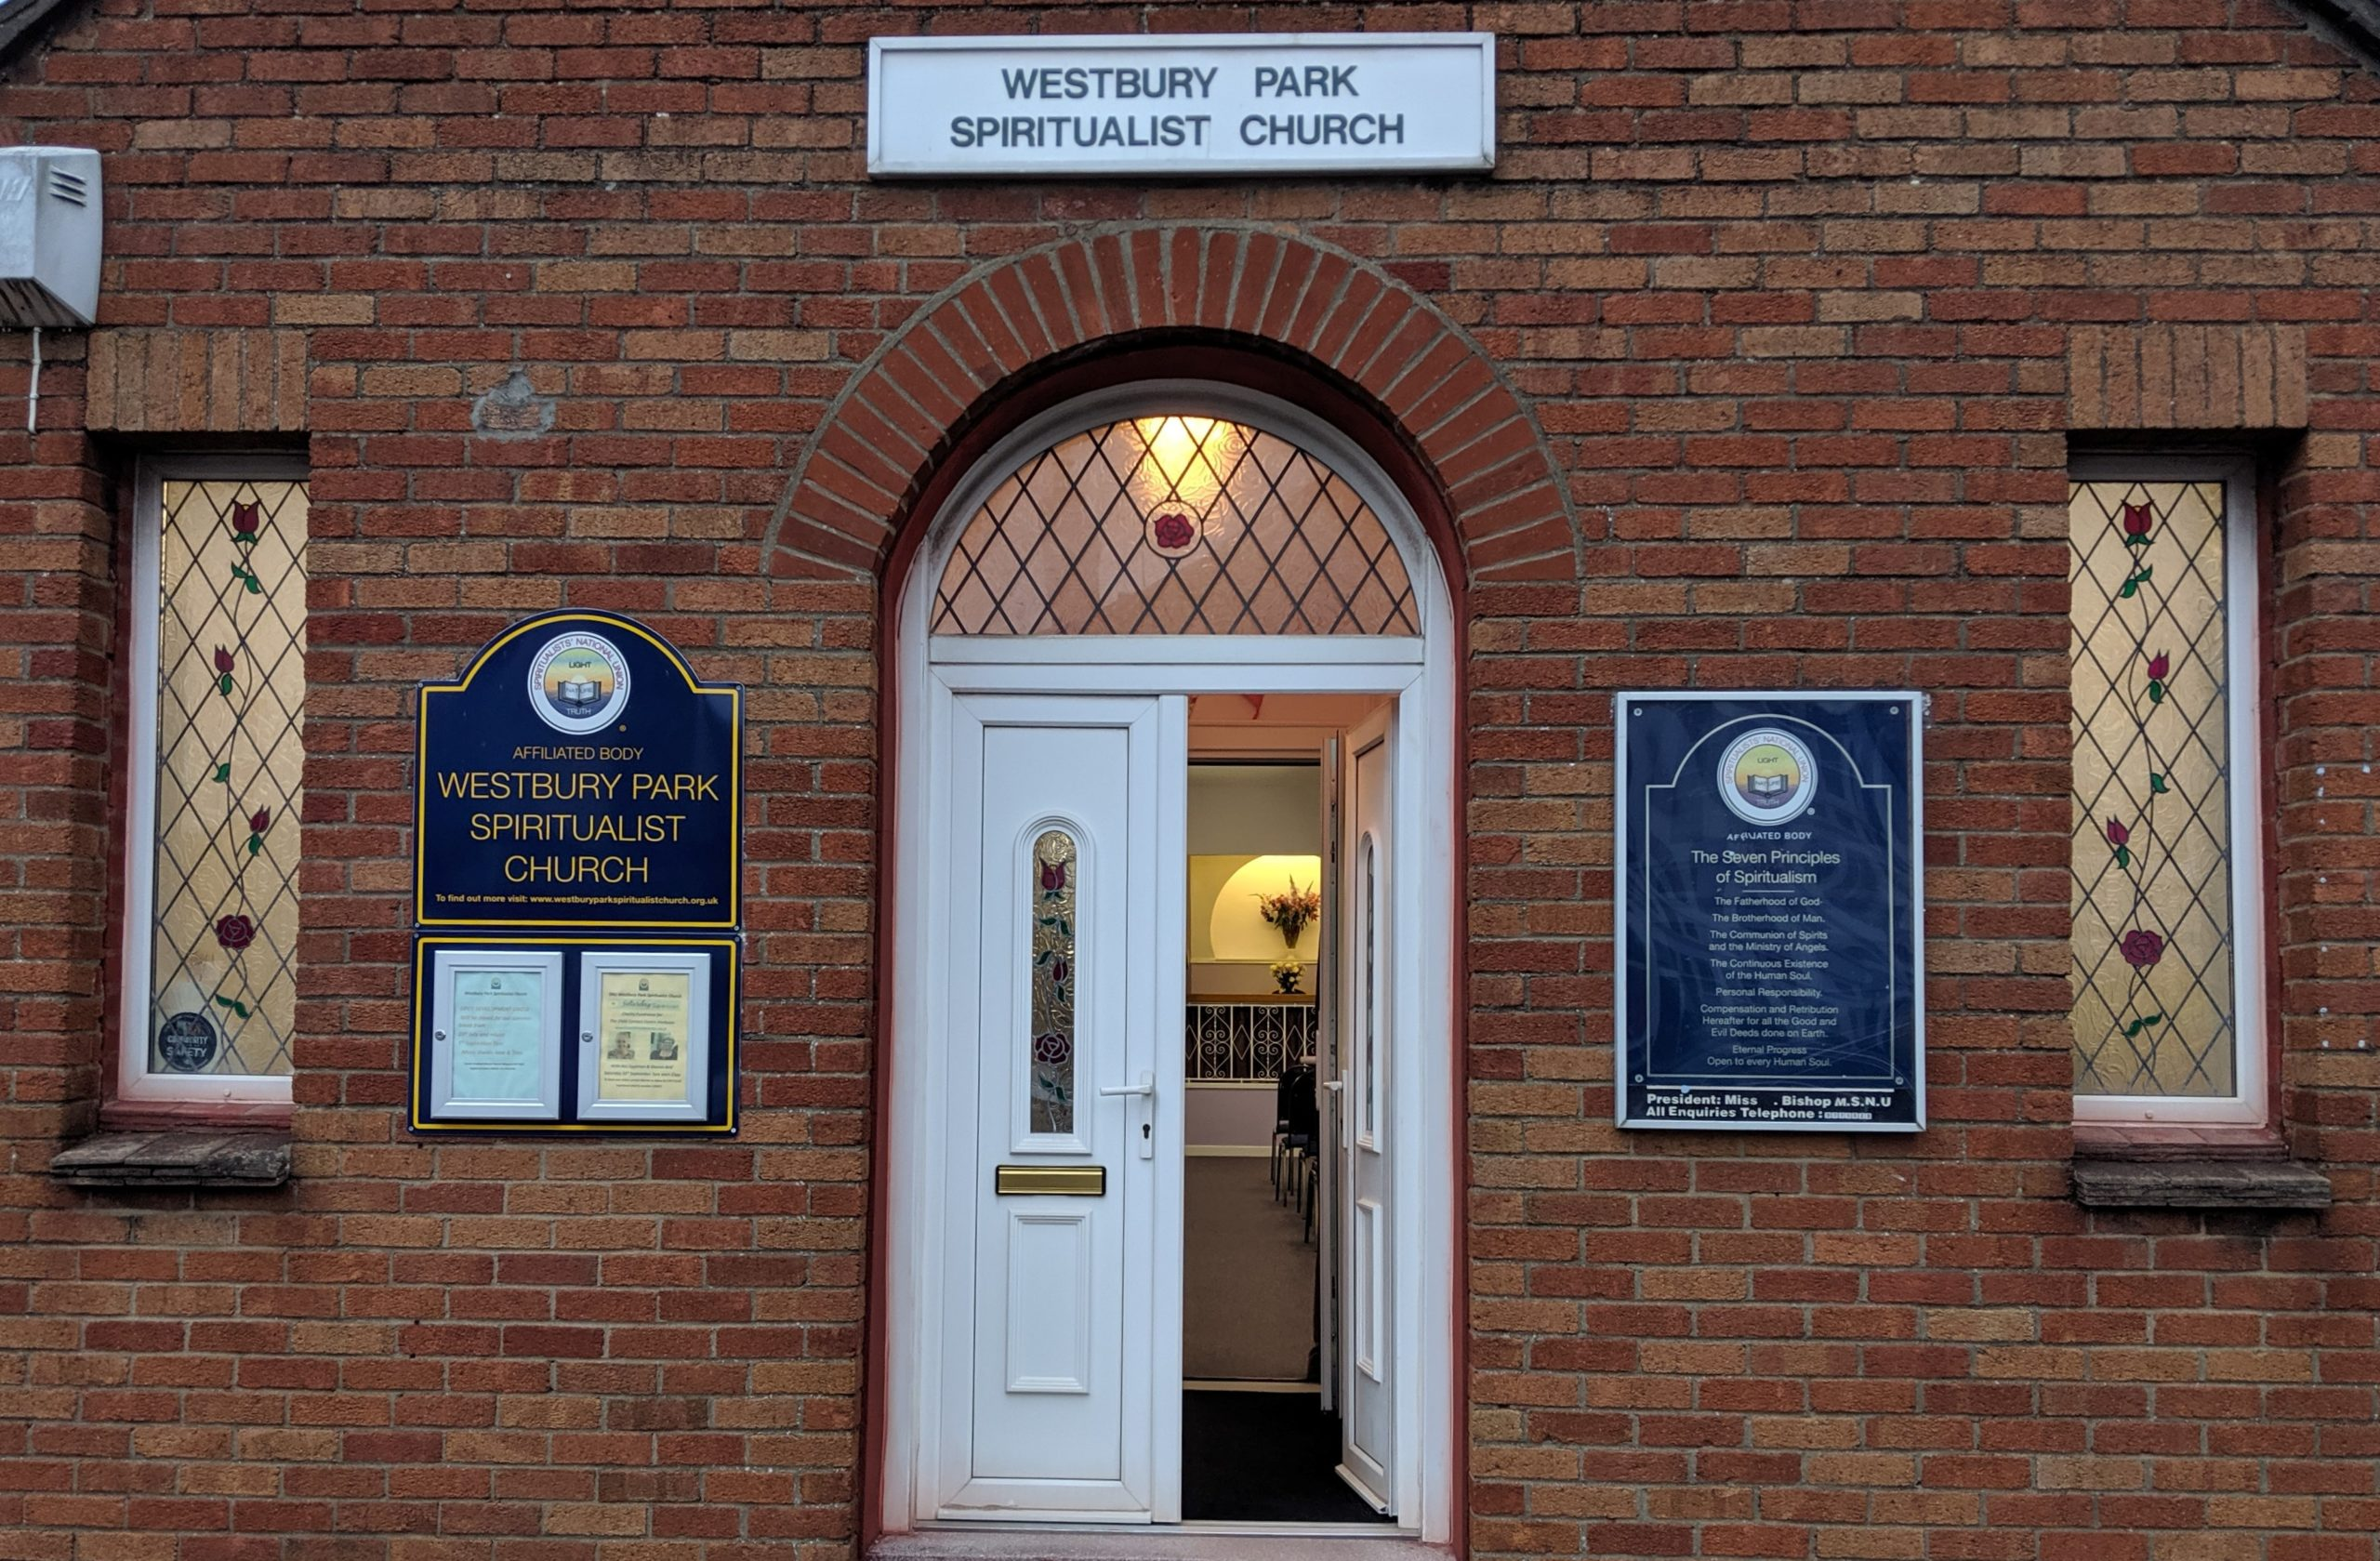 Westbury park Spiritualist Church - doorway